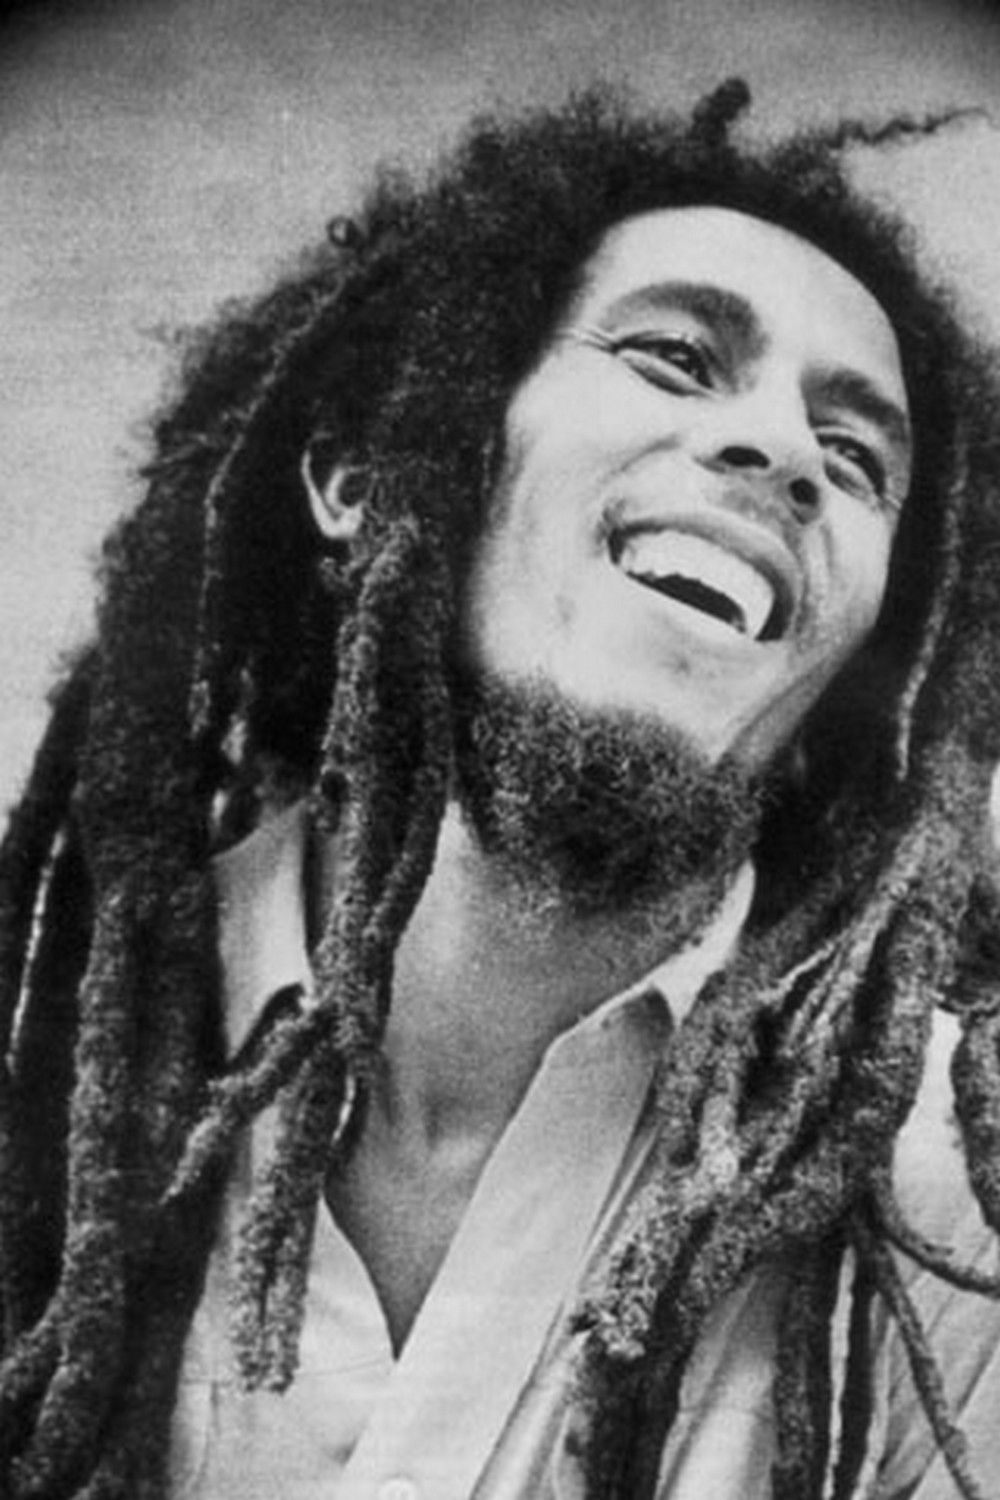 Bob Marley Head Shot Bw Android Wallpaper Creative Mind